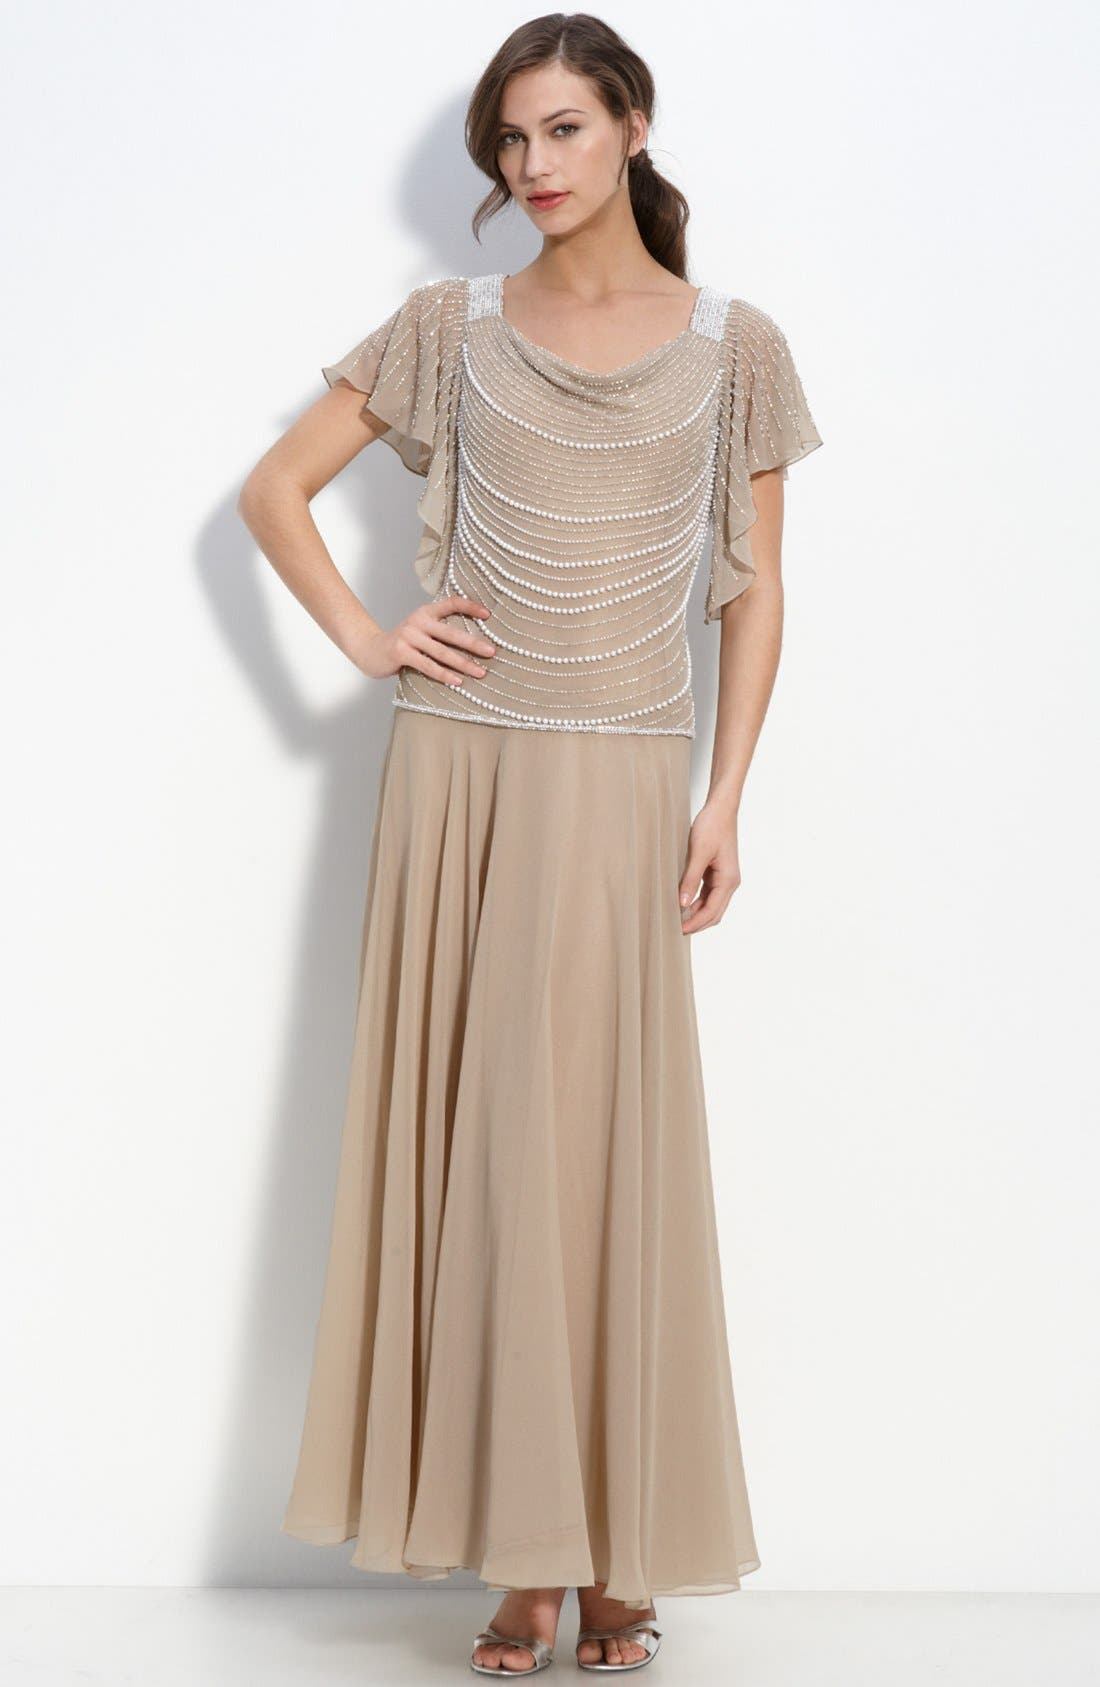 Main Image - J Kara Beaded Mock Two-Piece Crepe Dress